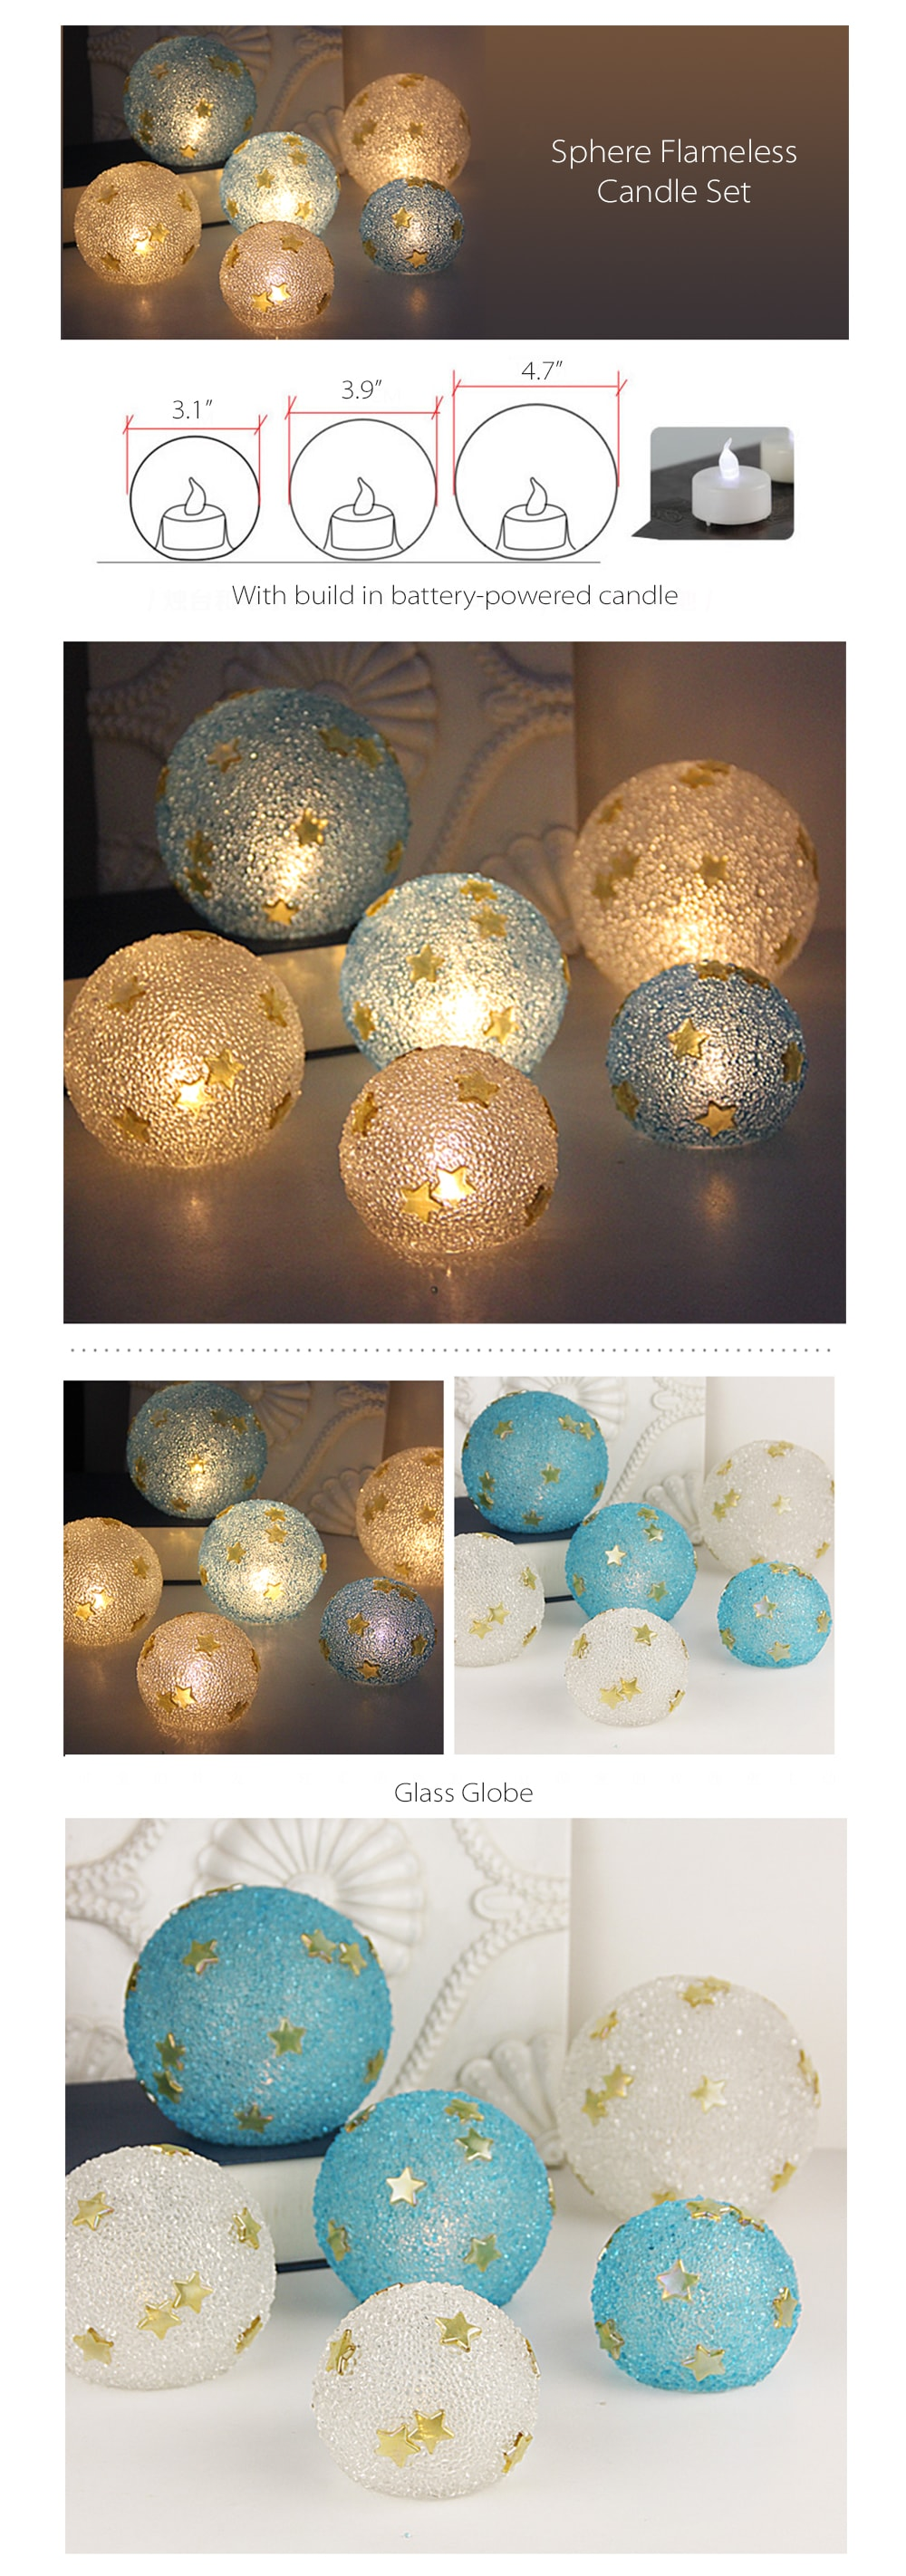 Colorful Sphere Candle Shimmering Glow